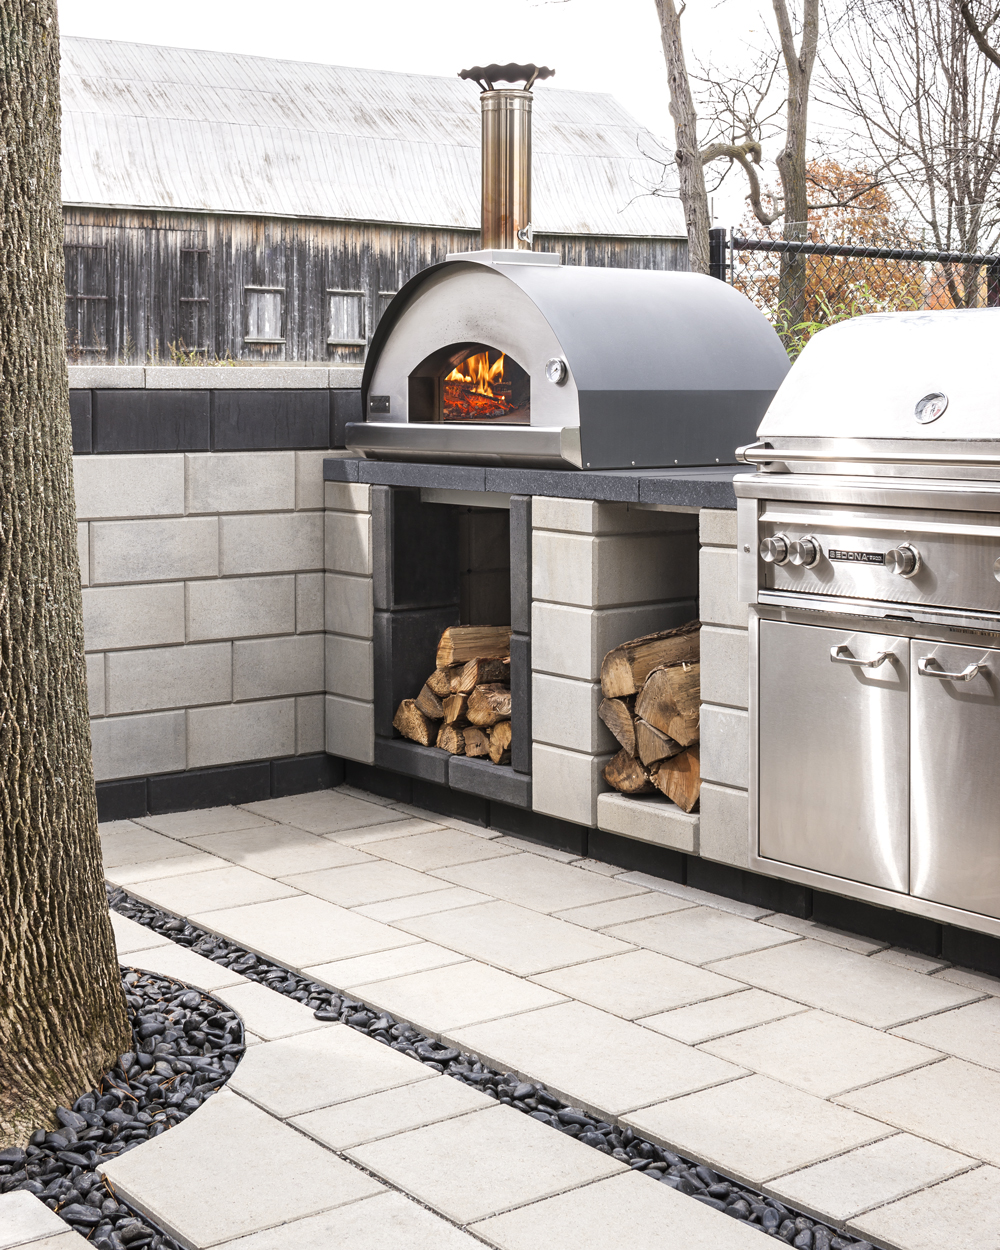 3-outdoor-pizza-oven-Forno-four-pizza-exterieur-01015_05_449_PPI